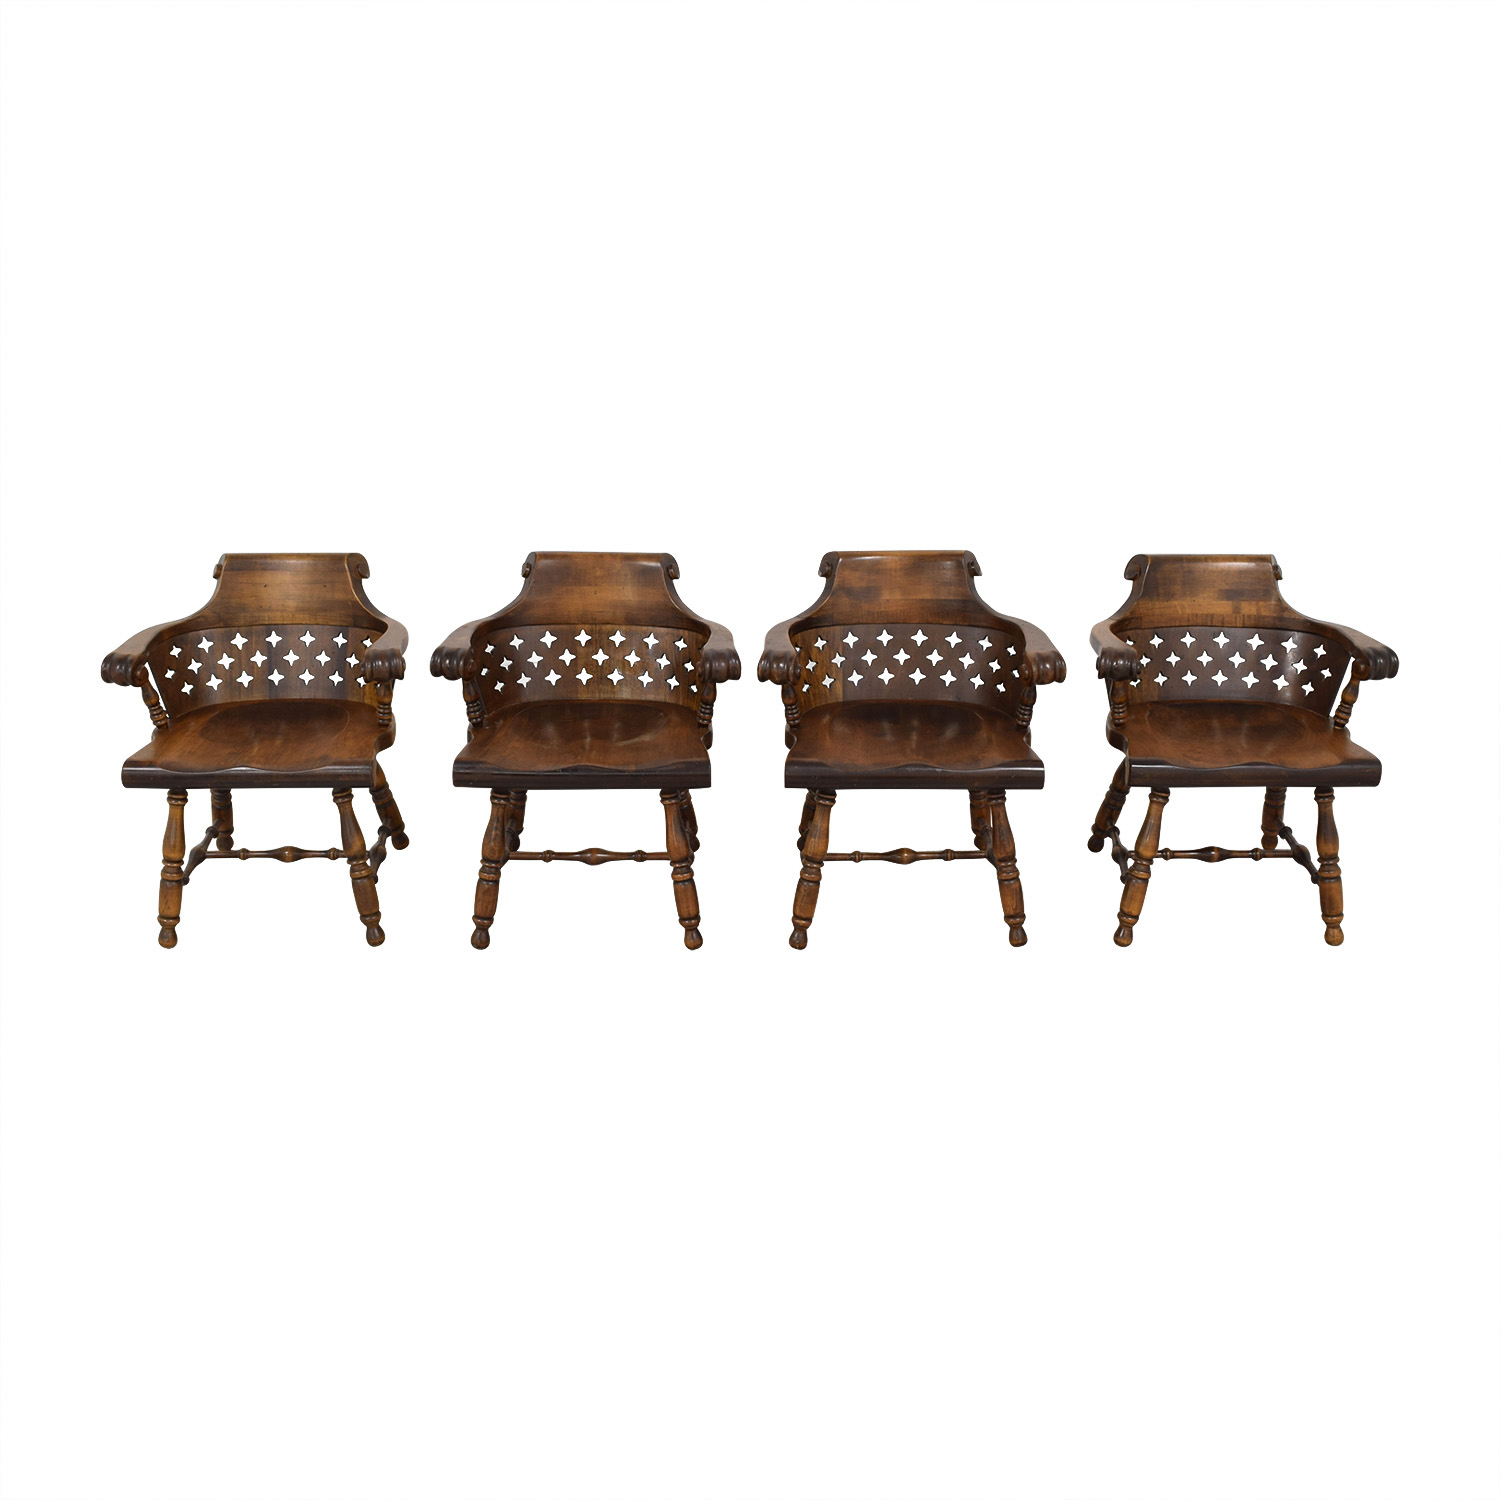 Ethan Allen Patterned Cutout Dining Chairs sale